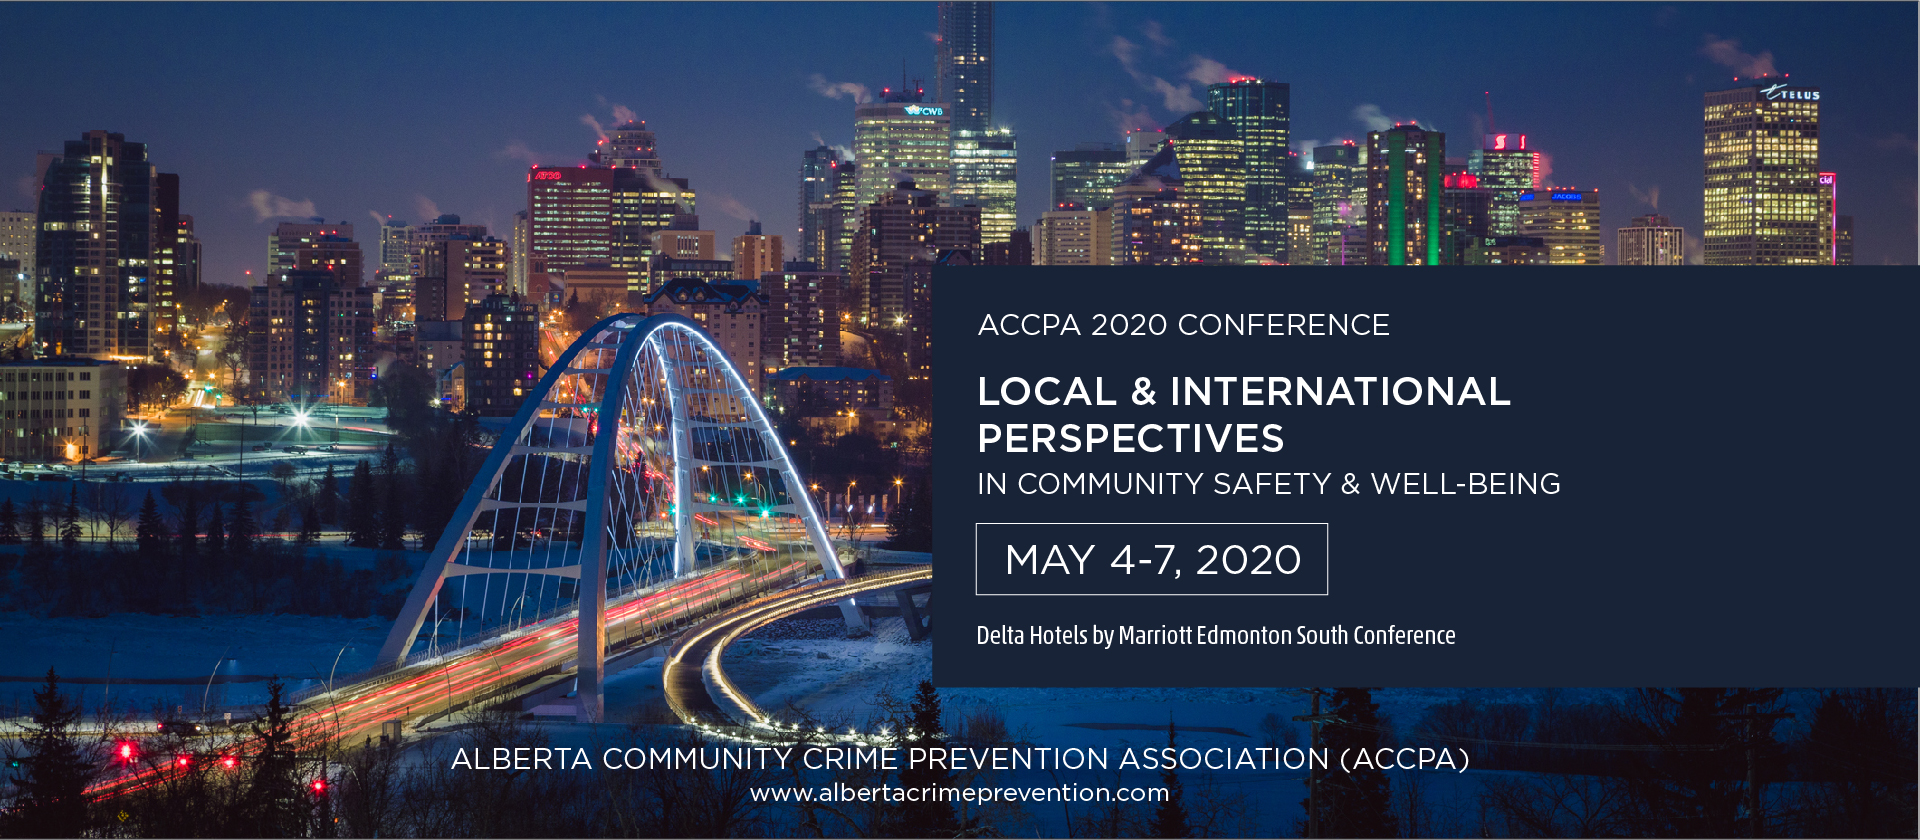 ACCPA2020-Website-1920×840